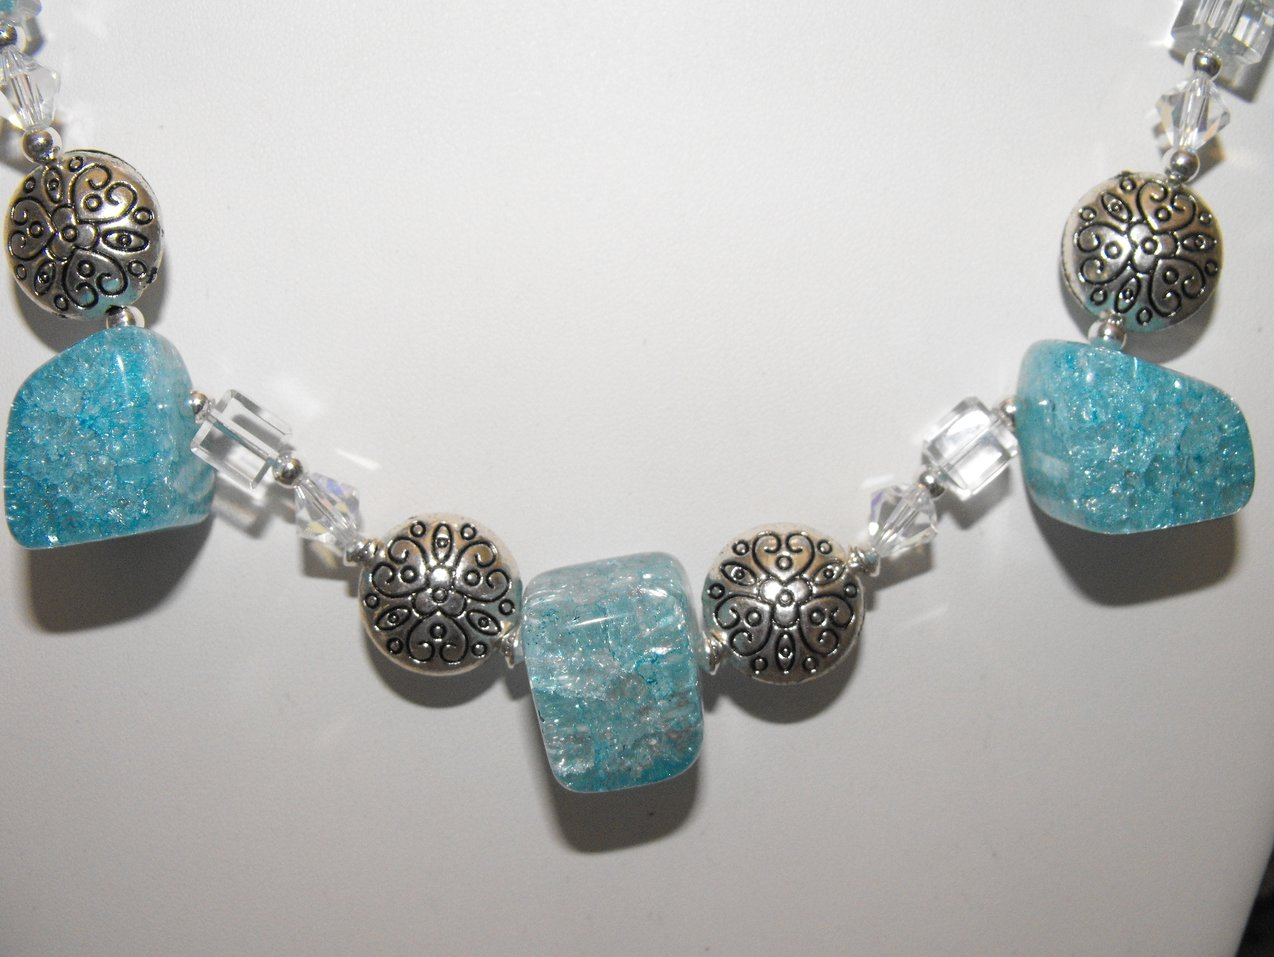 Image 1 of Chunky Necklace Choker Aqua Crackle Quartz Crystal Pewter Beads Silver Plated